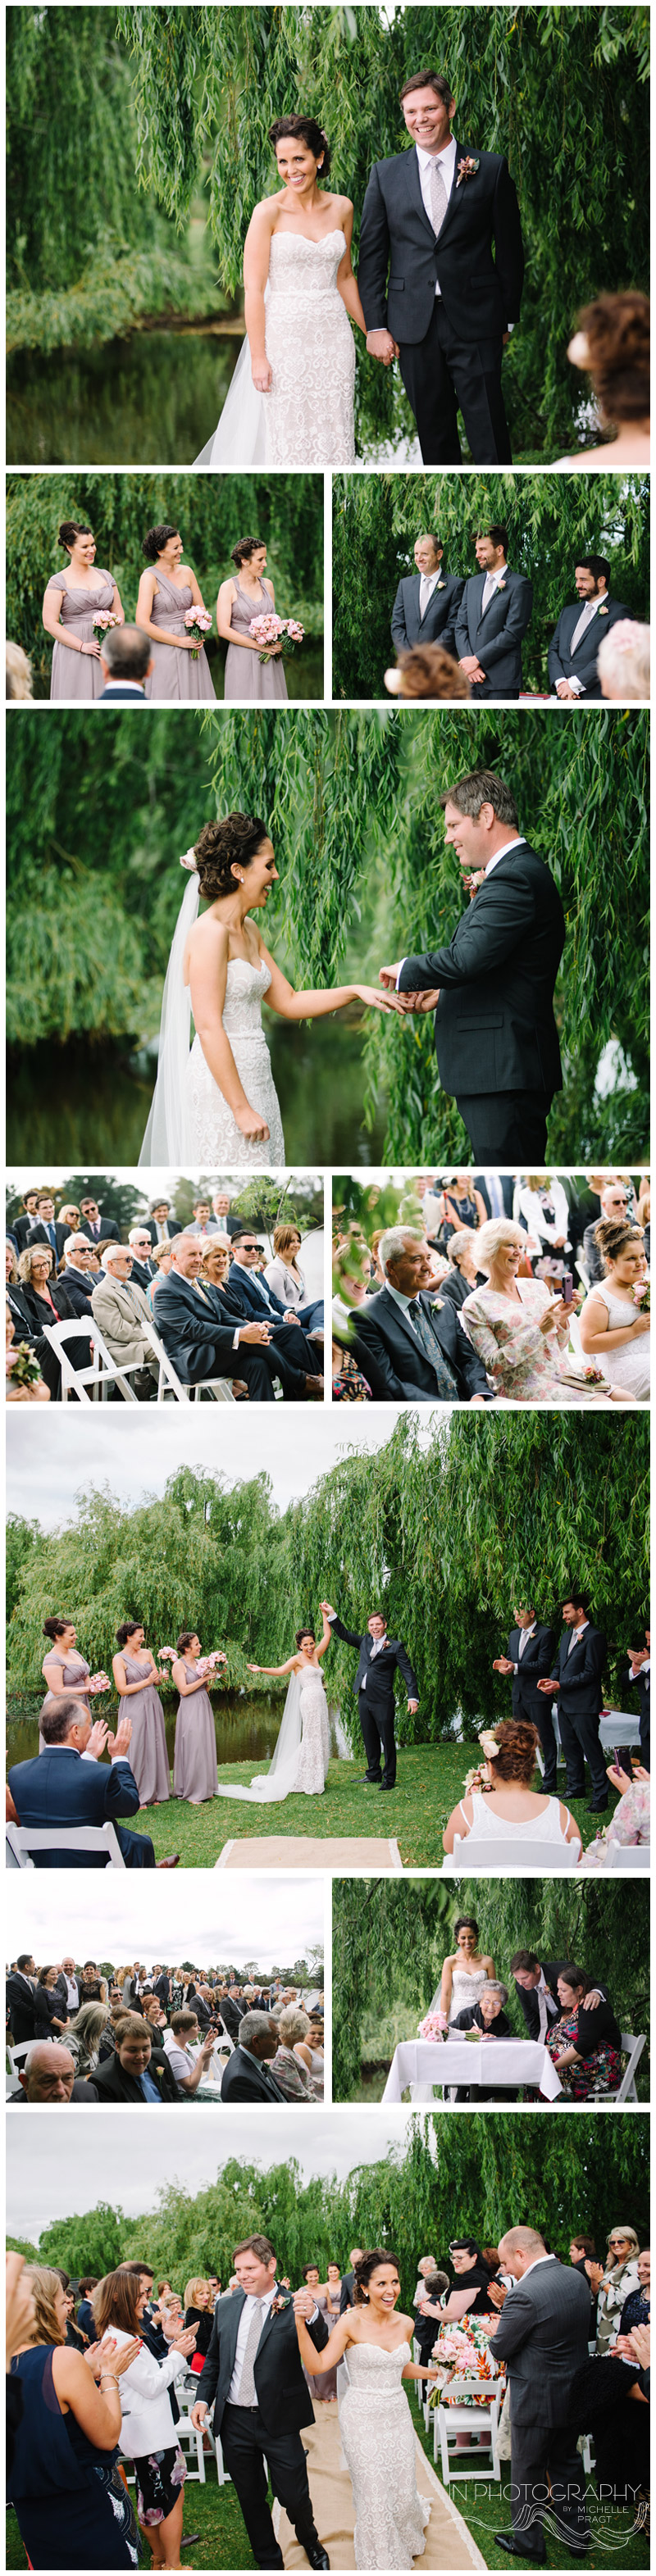 garden wedding ceremony at Stillwater at Crittenden